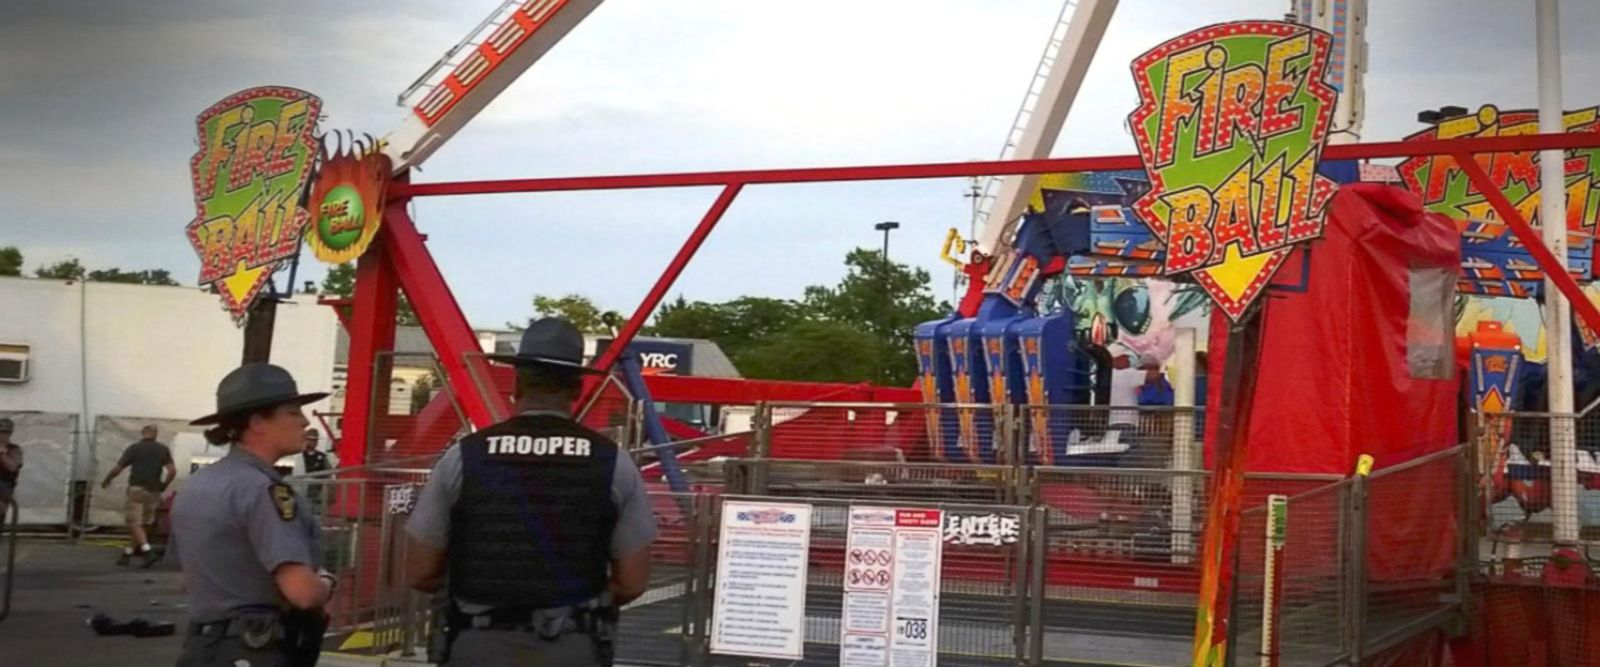 Ohio State Fair reopens after 18-year-old's death